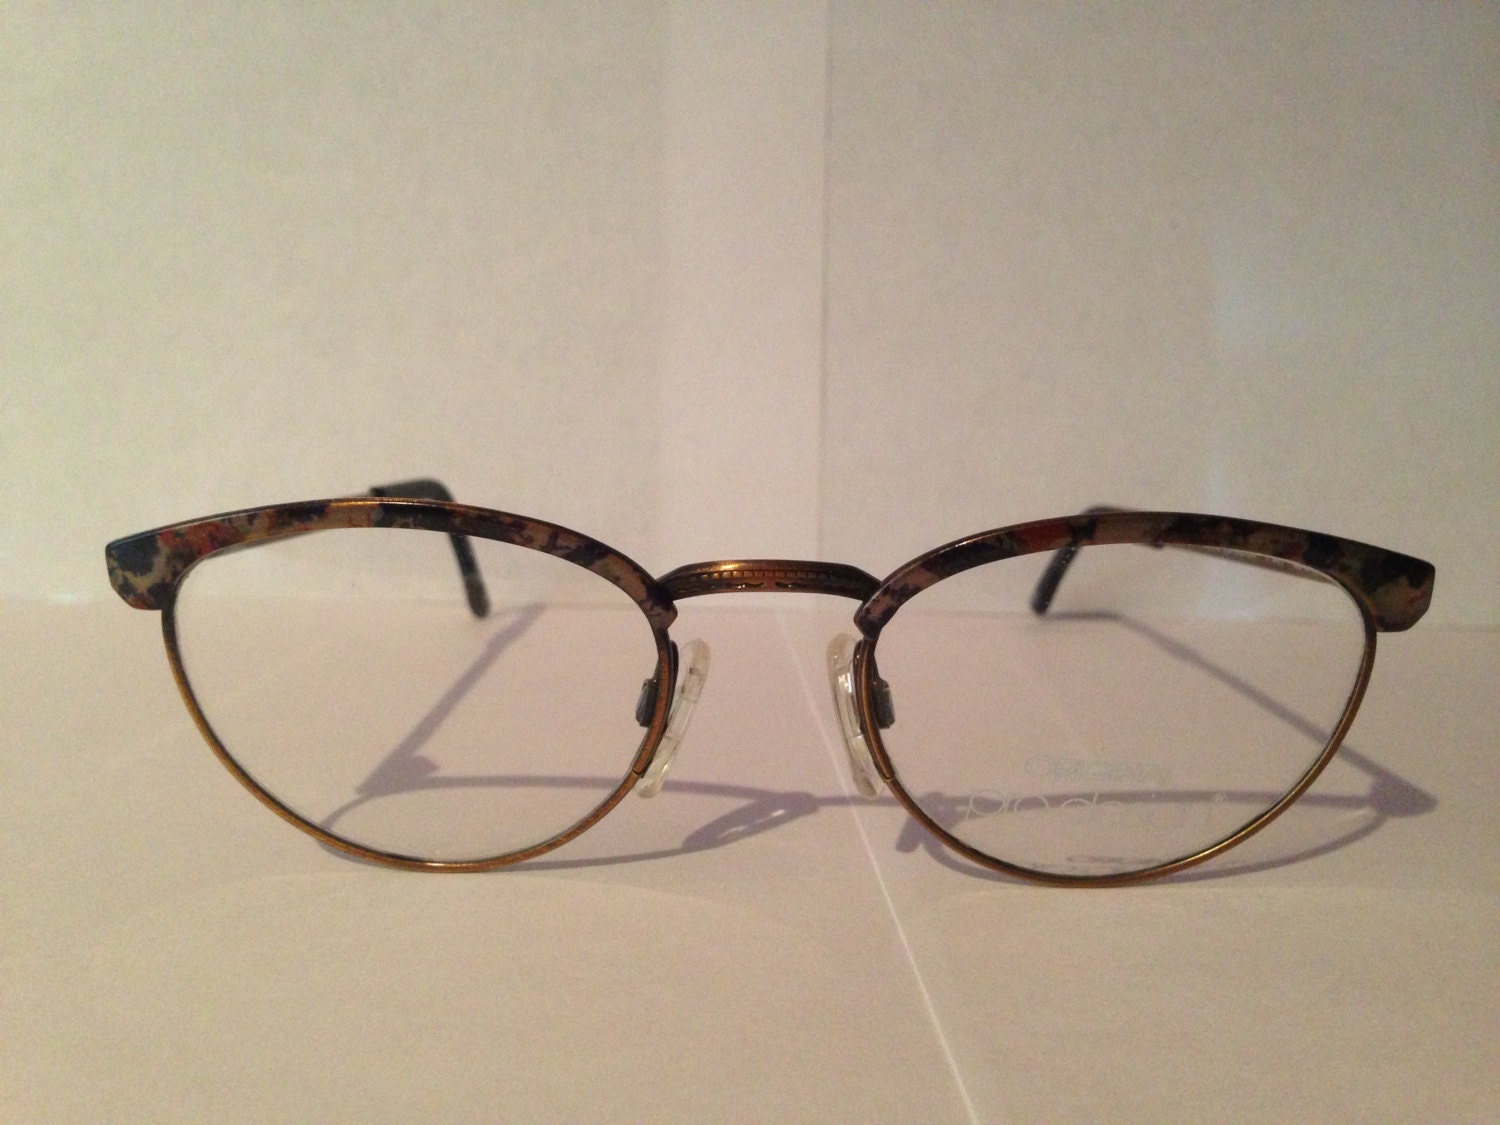 new prodesign denmark eyeglasses p 401 made in spain i